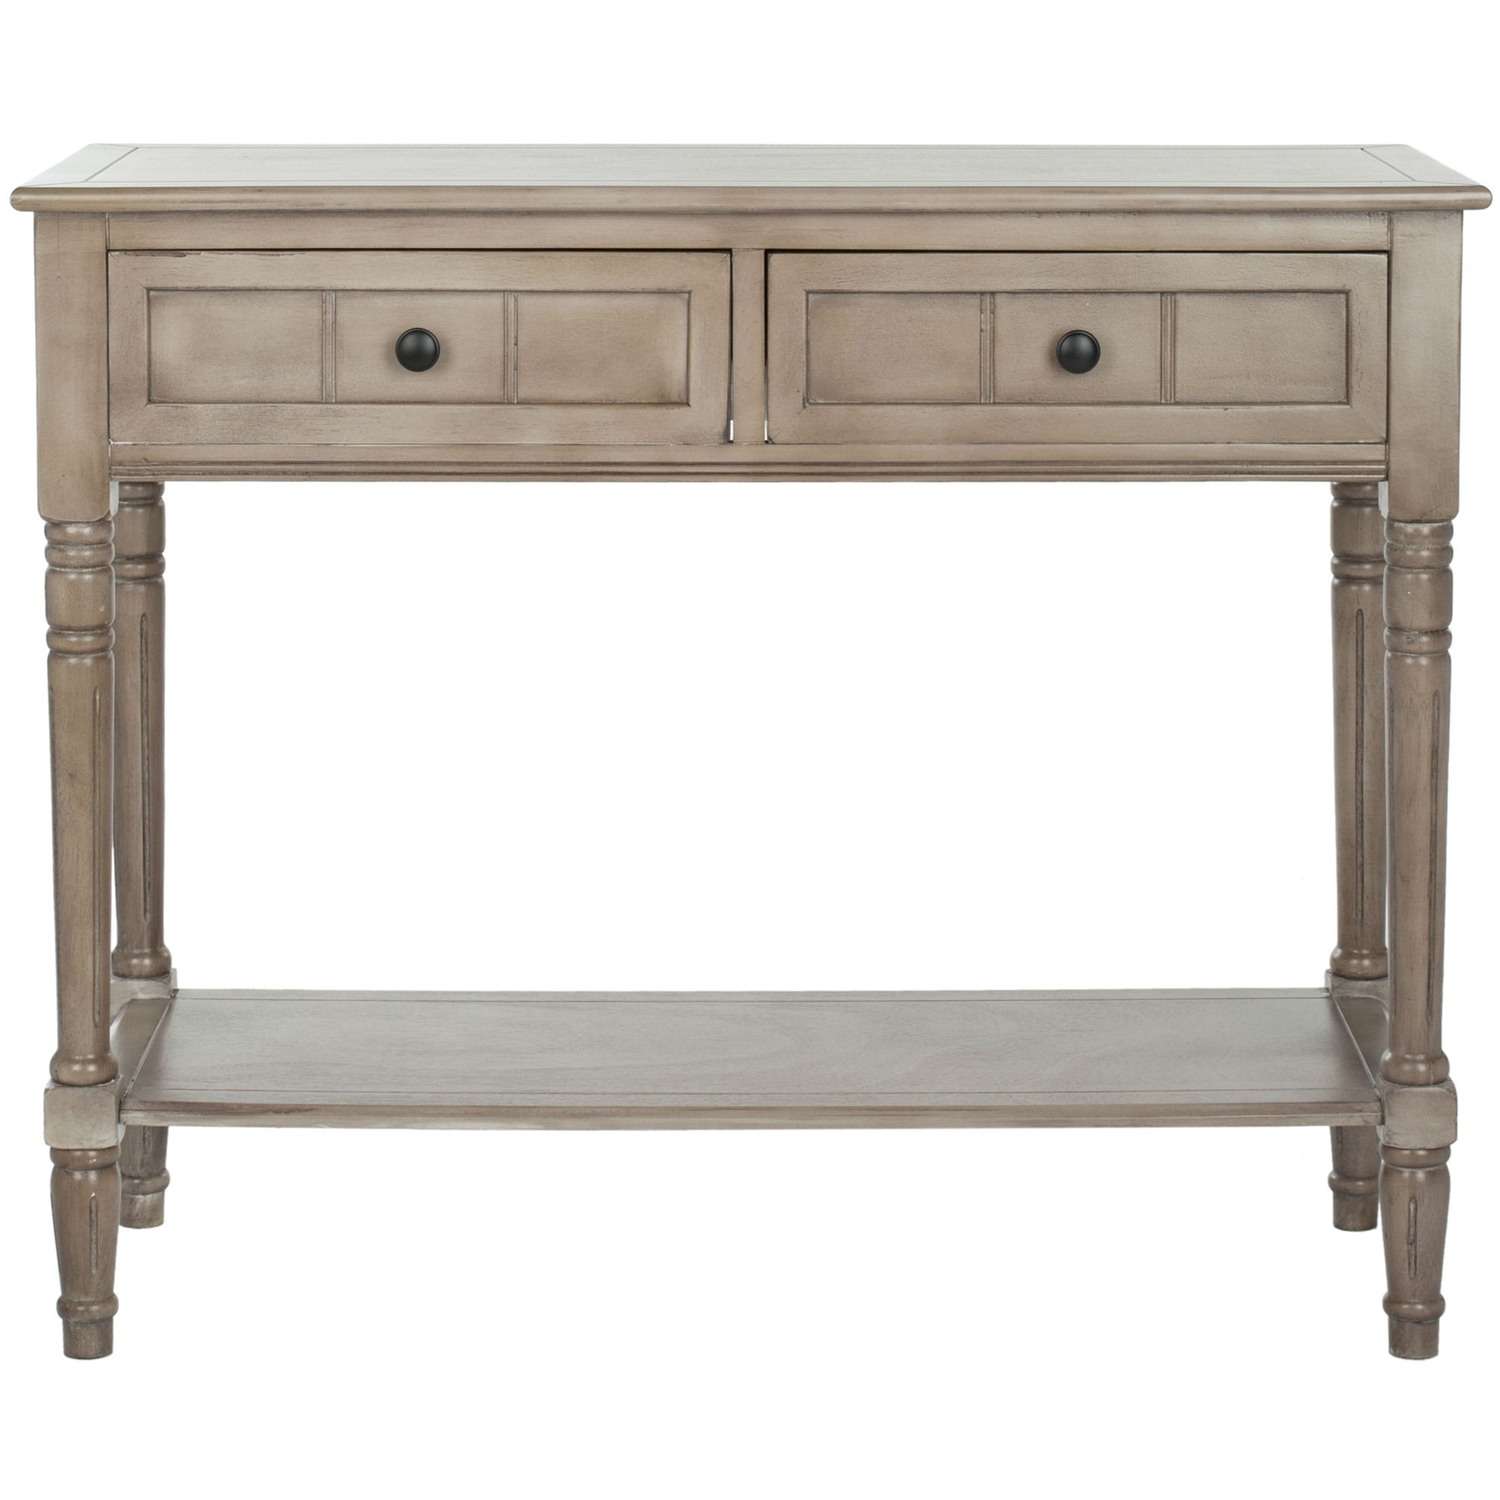 Console Accent Table Traditional Style Sofa In Distressed Cream